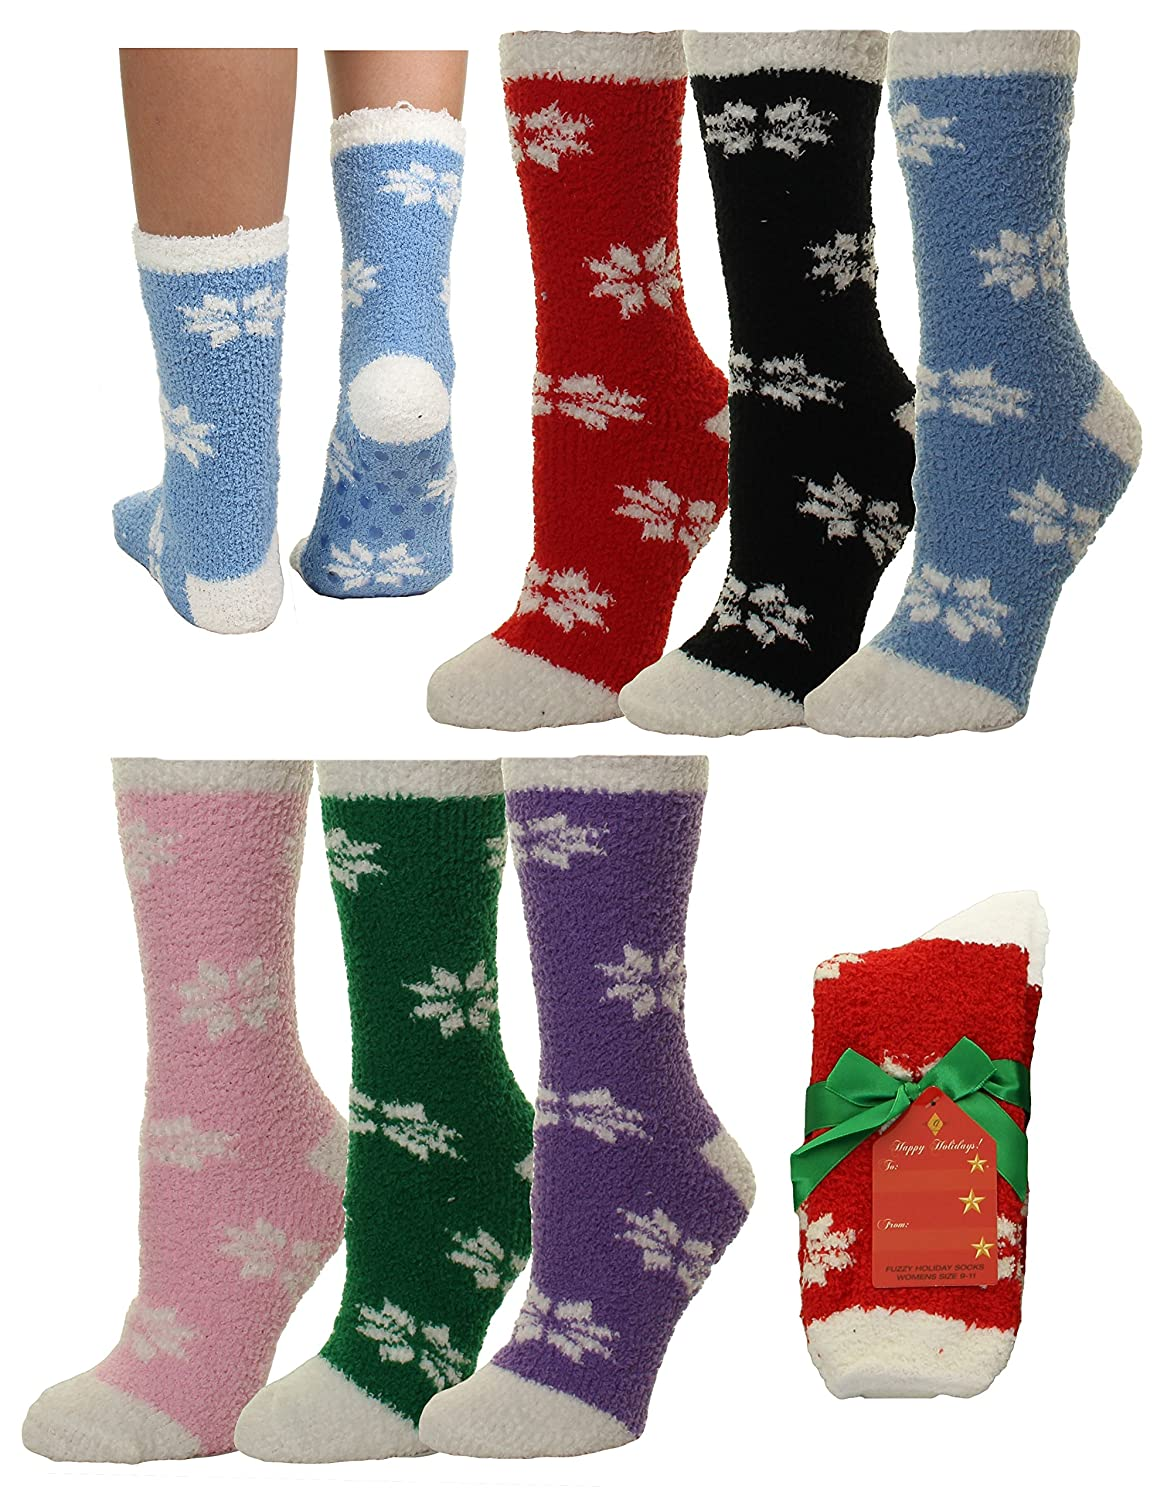 Gilbin 6 Pack Super Soft Toasty Fuzzy Snowflake Holiday Socks, Anti Grip Socks, Size 9-11